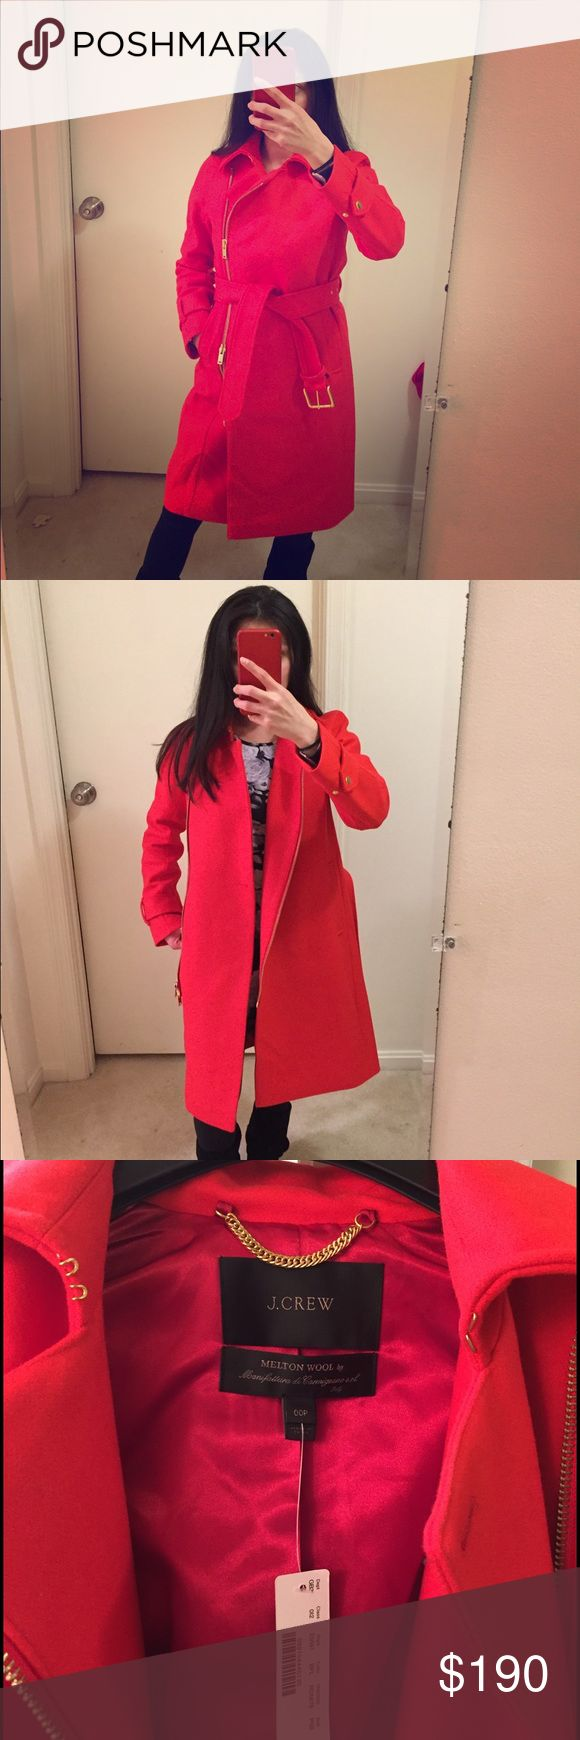 Petite Belted wool trench coat Beautiful vibrant red, soft wool, timeless. Looks great over any outfit. Keeps you warm with style! J. Crew Jackets & Coats Trench Coats